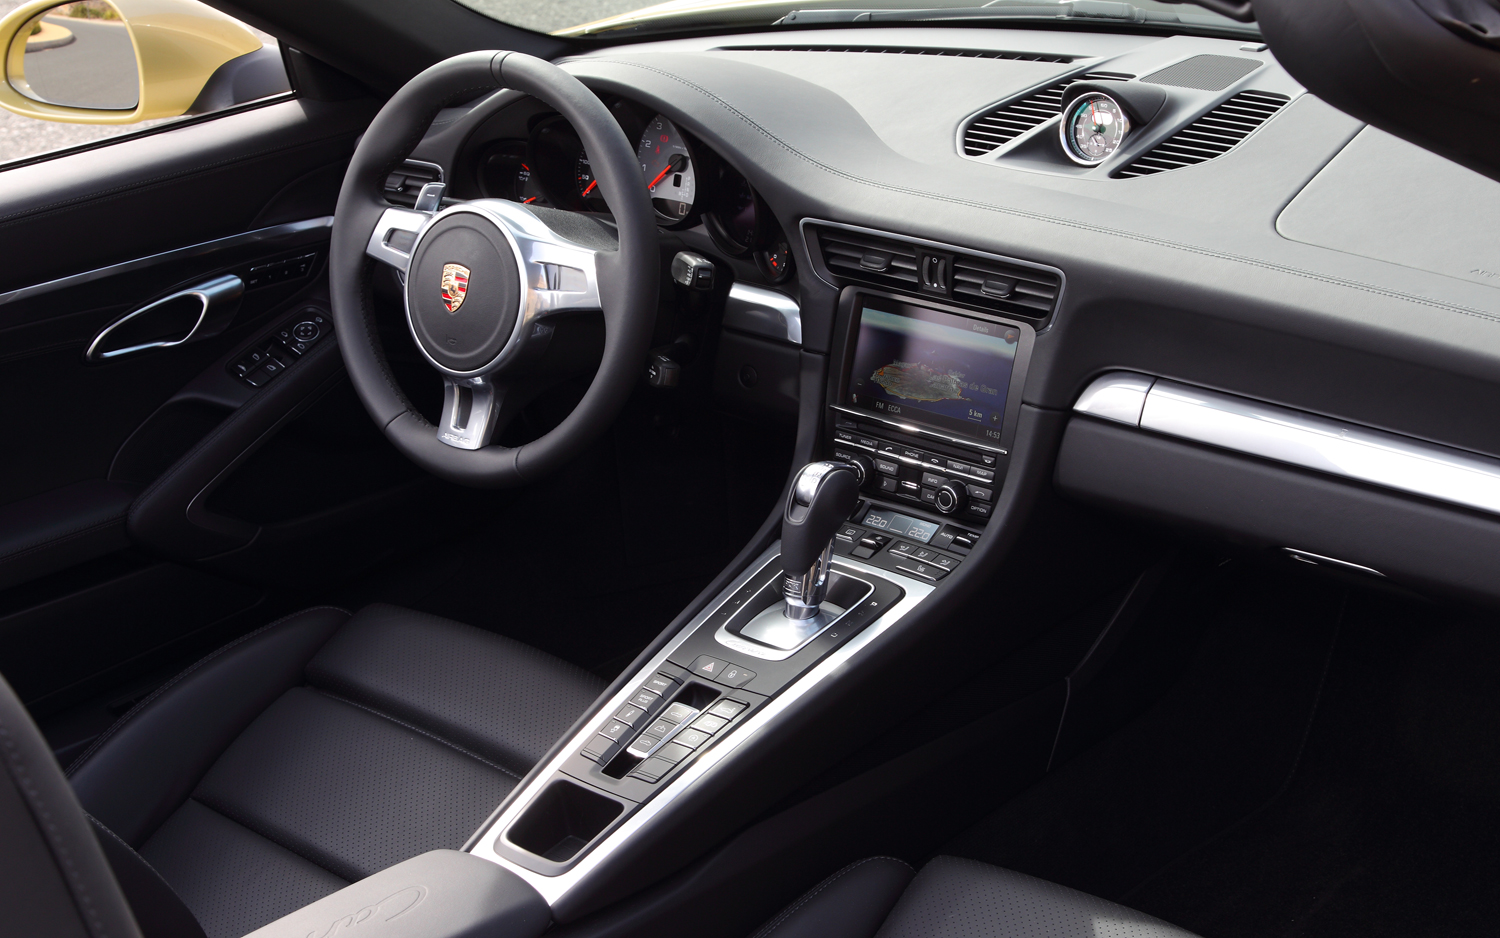 Porsche 911 2019 Interior Dashboard